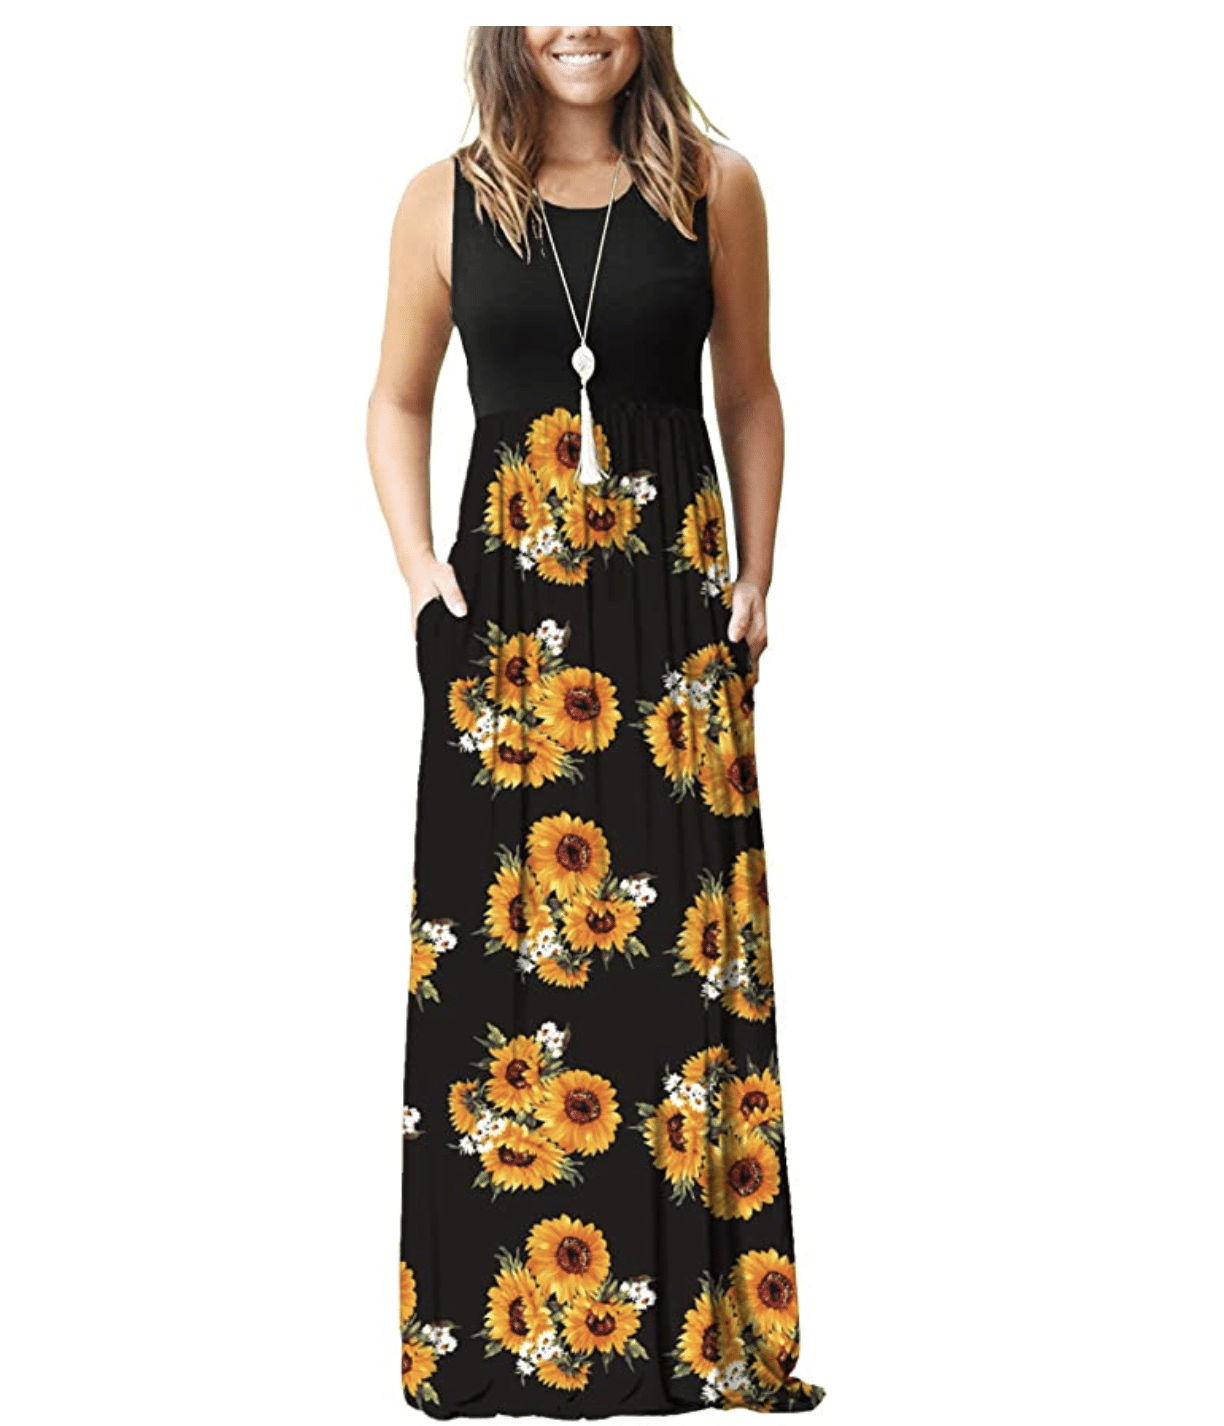 sunflower-gifts-dress